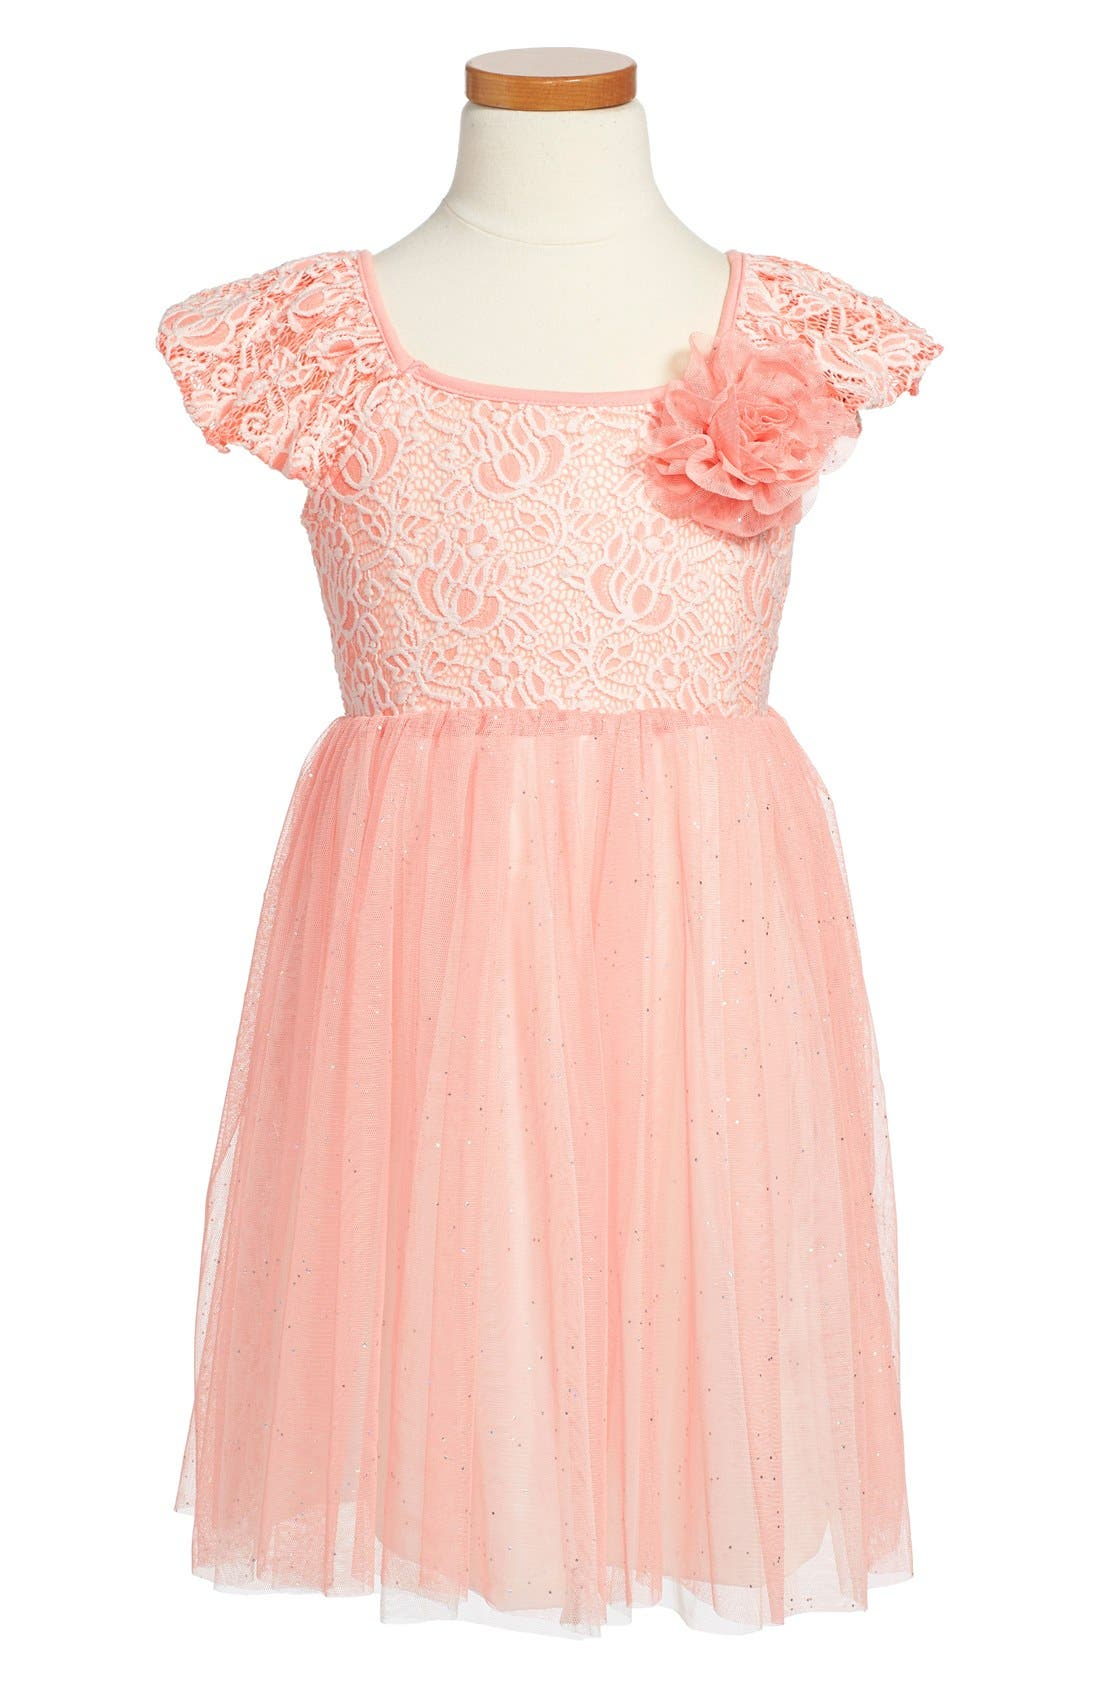 Tulle Skirt Party Dress,                             Main thumbnail 1, color,                             PINK